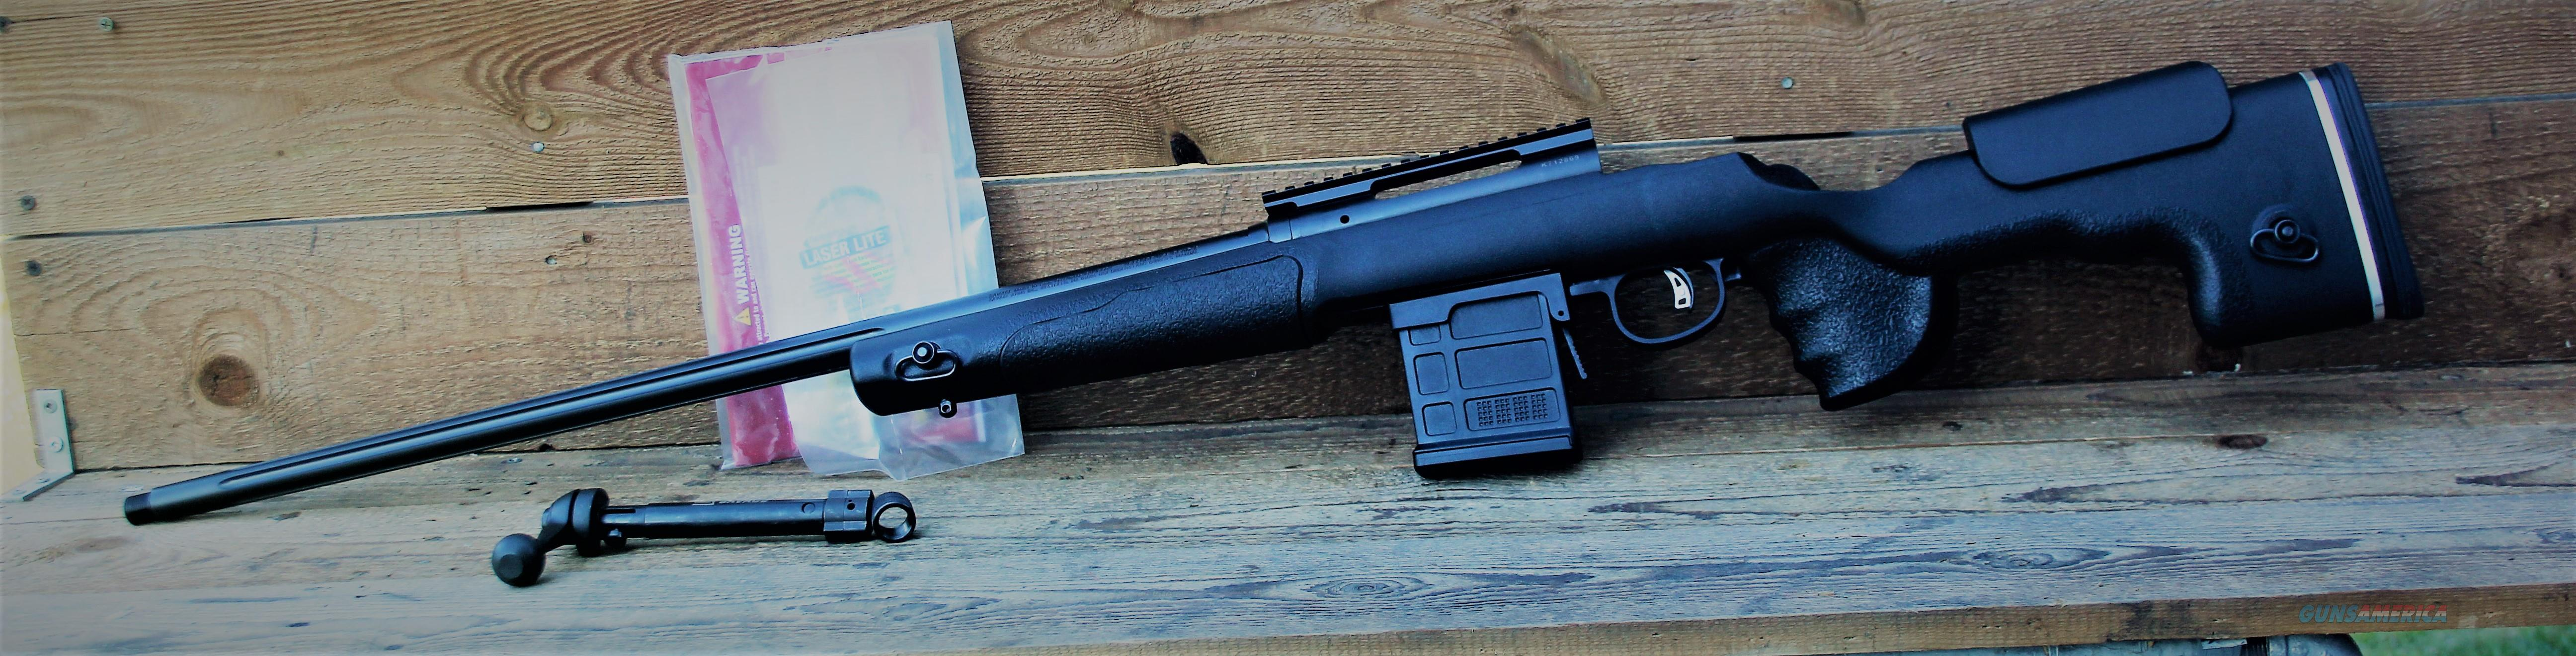 """Sale $103 EASY PAY SAVAGE Model Picatinny rail scope READY  long range Hunting  Pistol grip 26"""" heavy fluted free floated barrel threaded 1:8"""" Twist 6mm Creedmoor 10GRS Accu Trigger  GRS adjustable stock  10 Rds m1913  threaded 232549  Guns > Rifles > Savage Rifles > Other"""